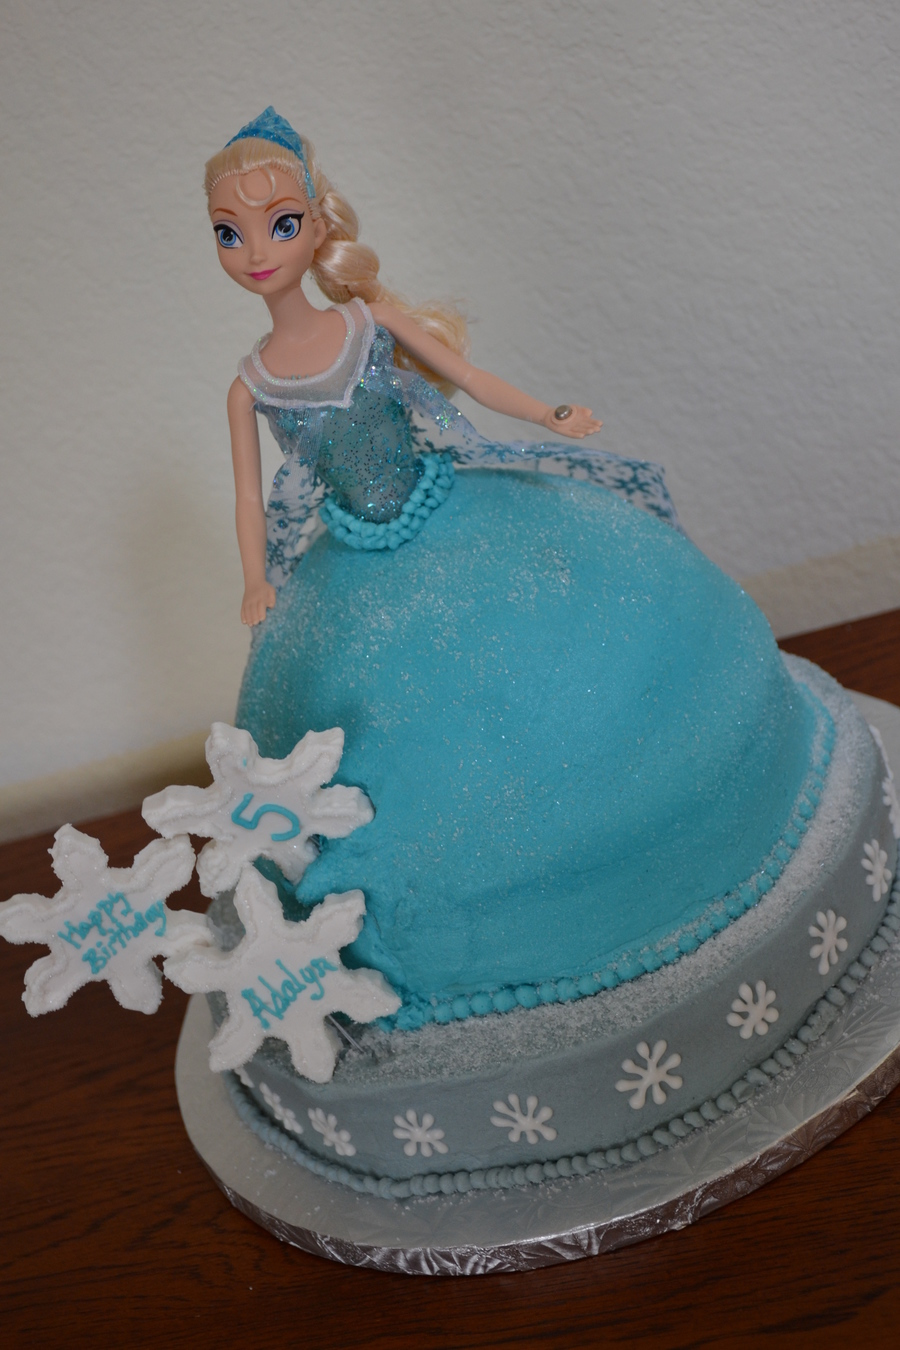 Elsa Doll Cake Decoration : Frozen Elsa Doll Cake Teal Amp Gray With Snowflakes ...